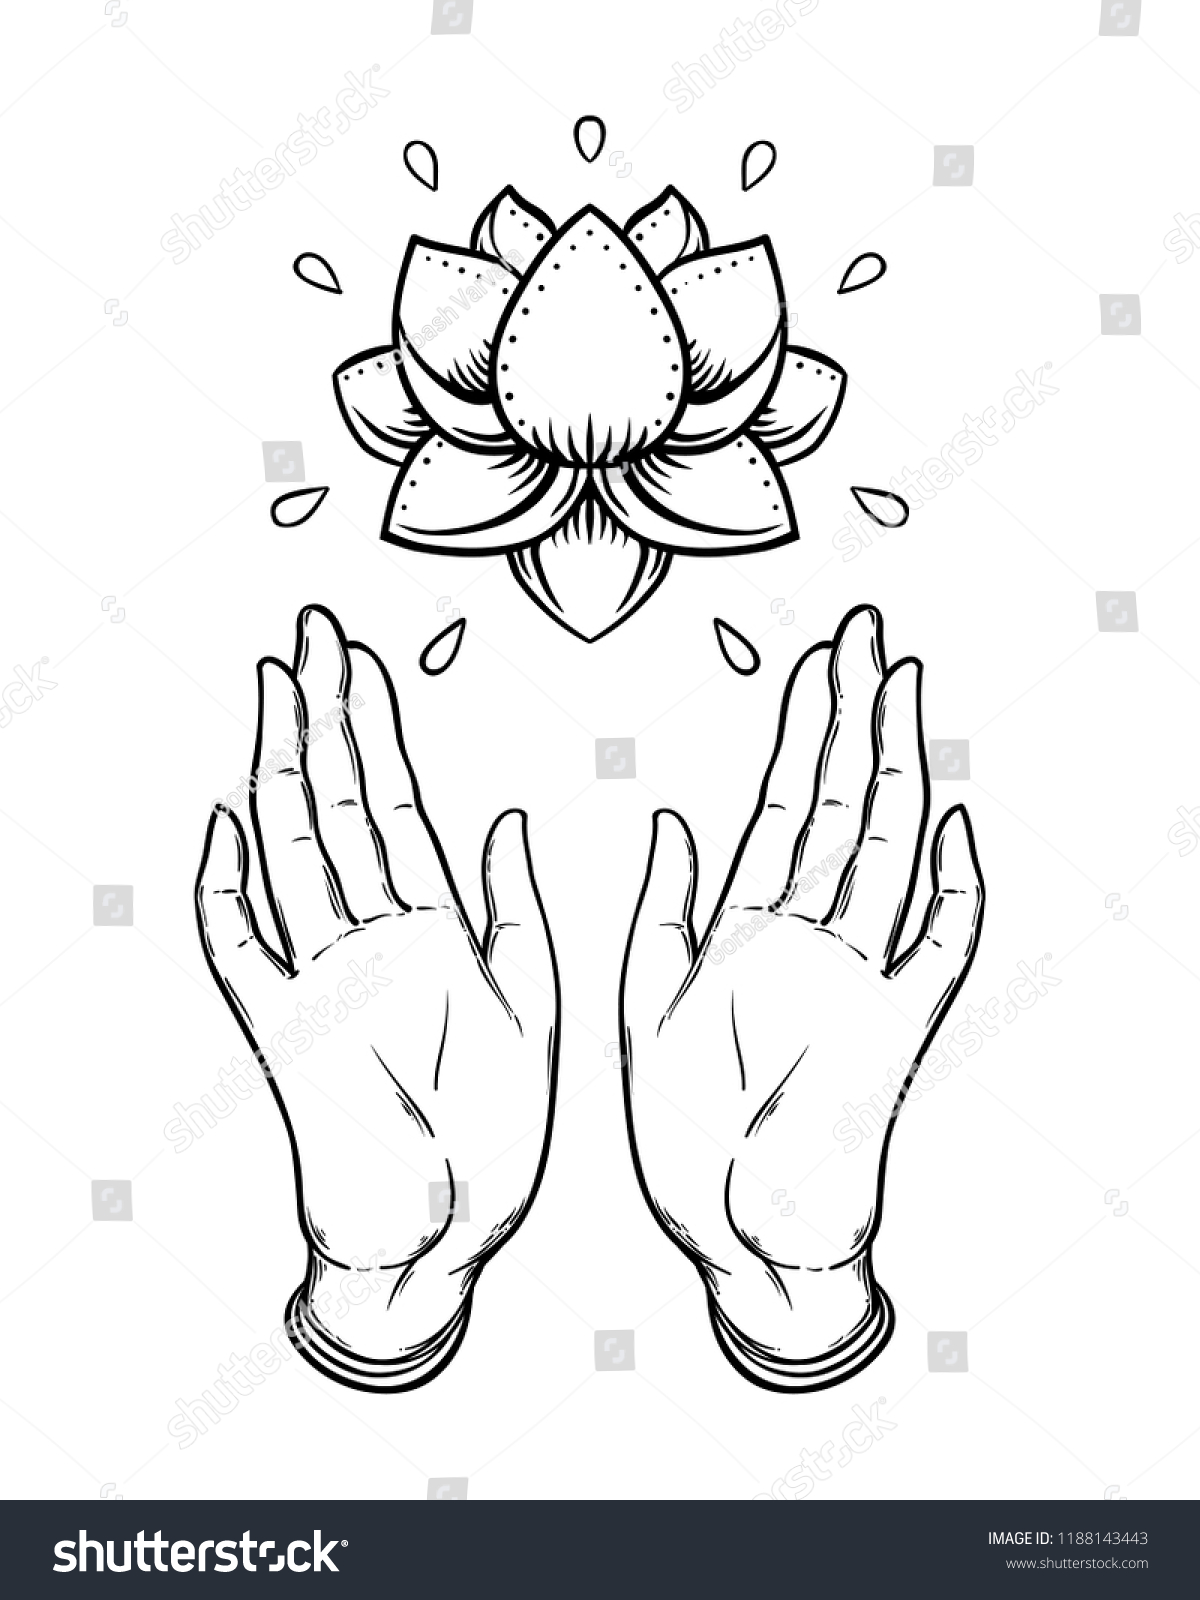 Lord buddhas open hands holding lotus stock vector royalty free lord buddhas open hands holding lotus flower isolated vector illustration of mudra hindu motifs izmirmasajfo